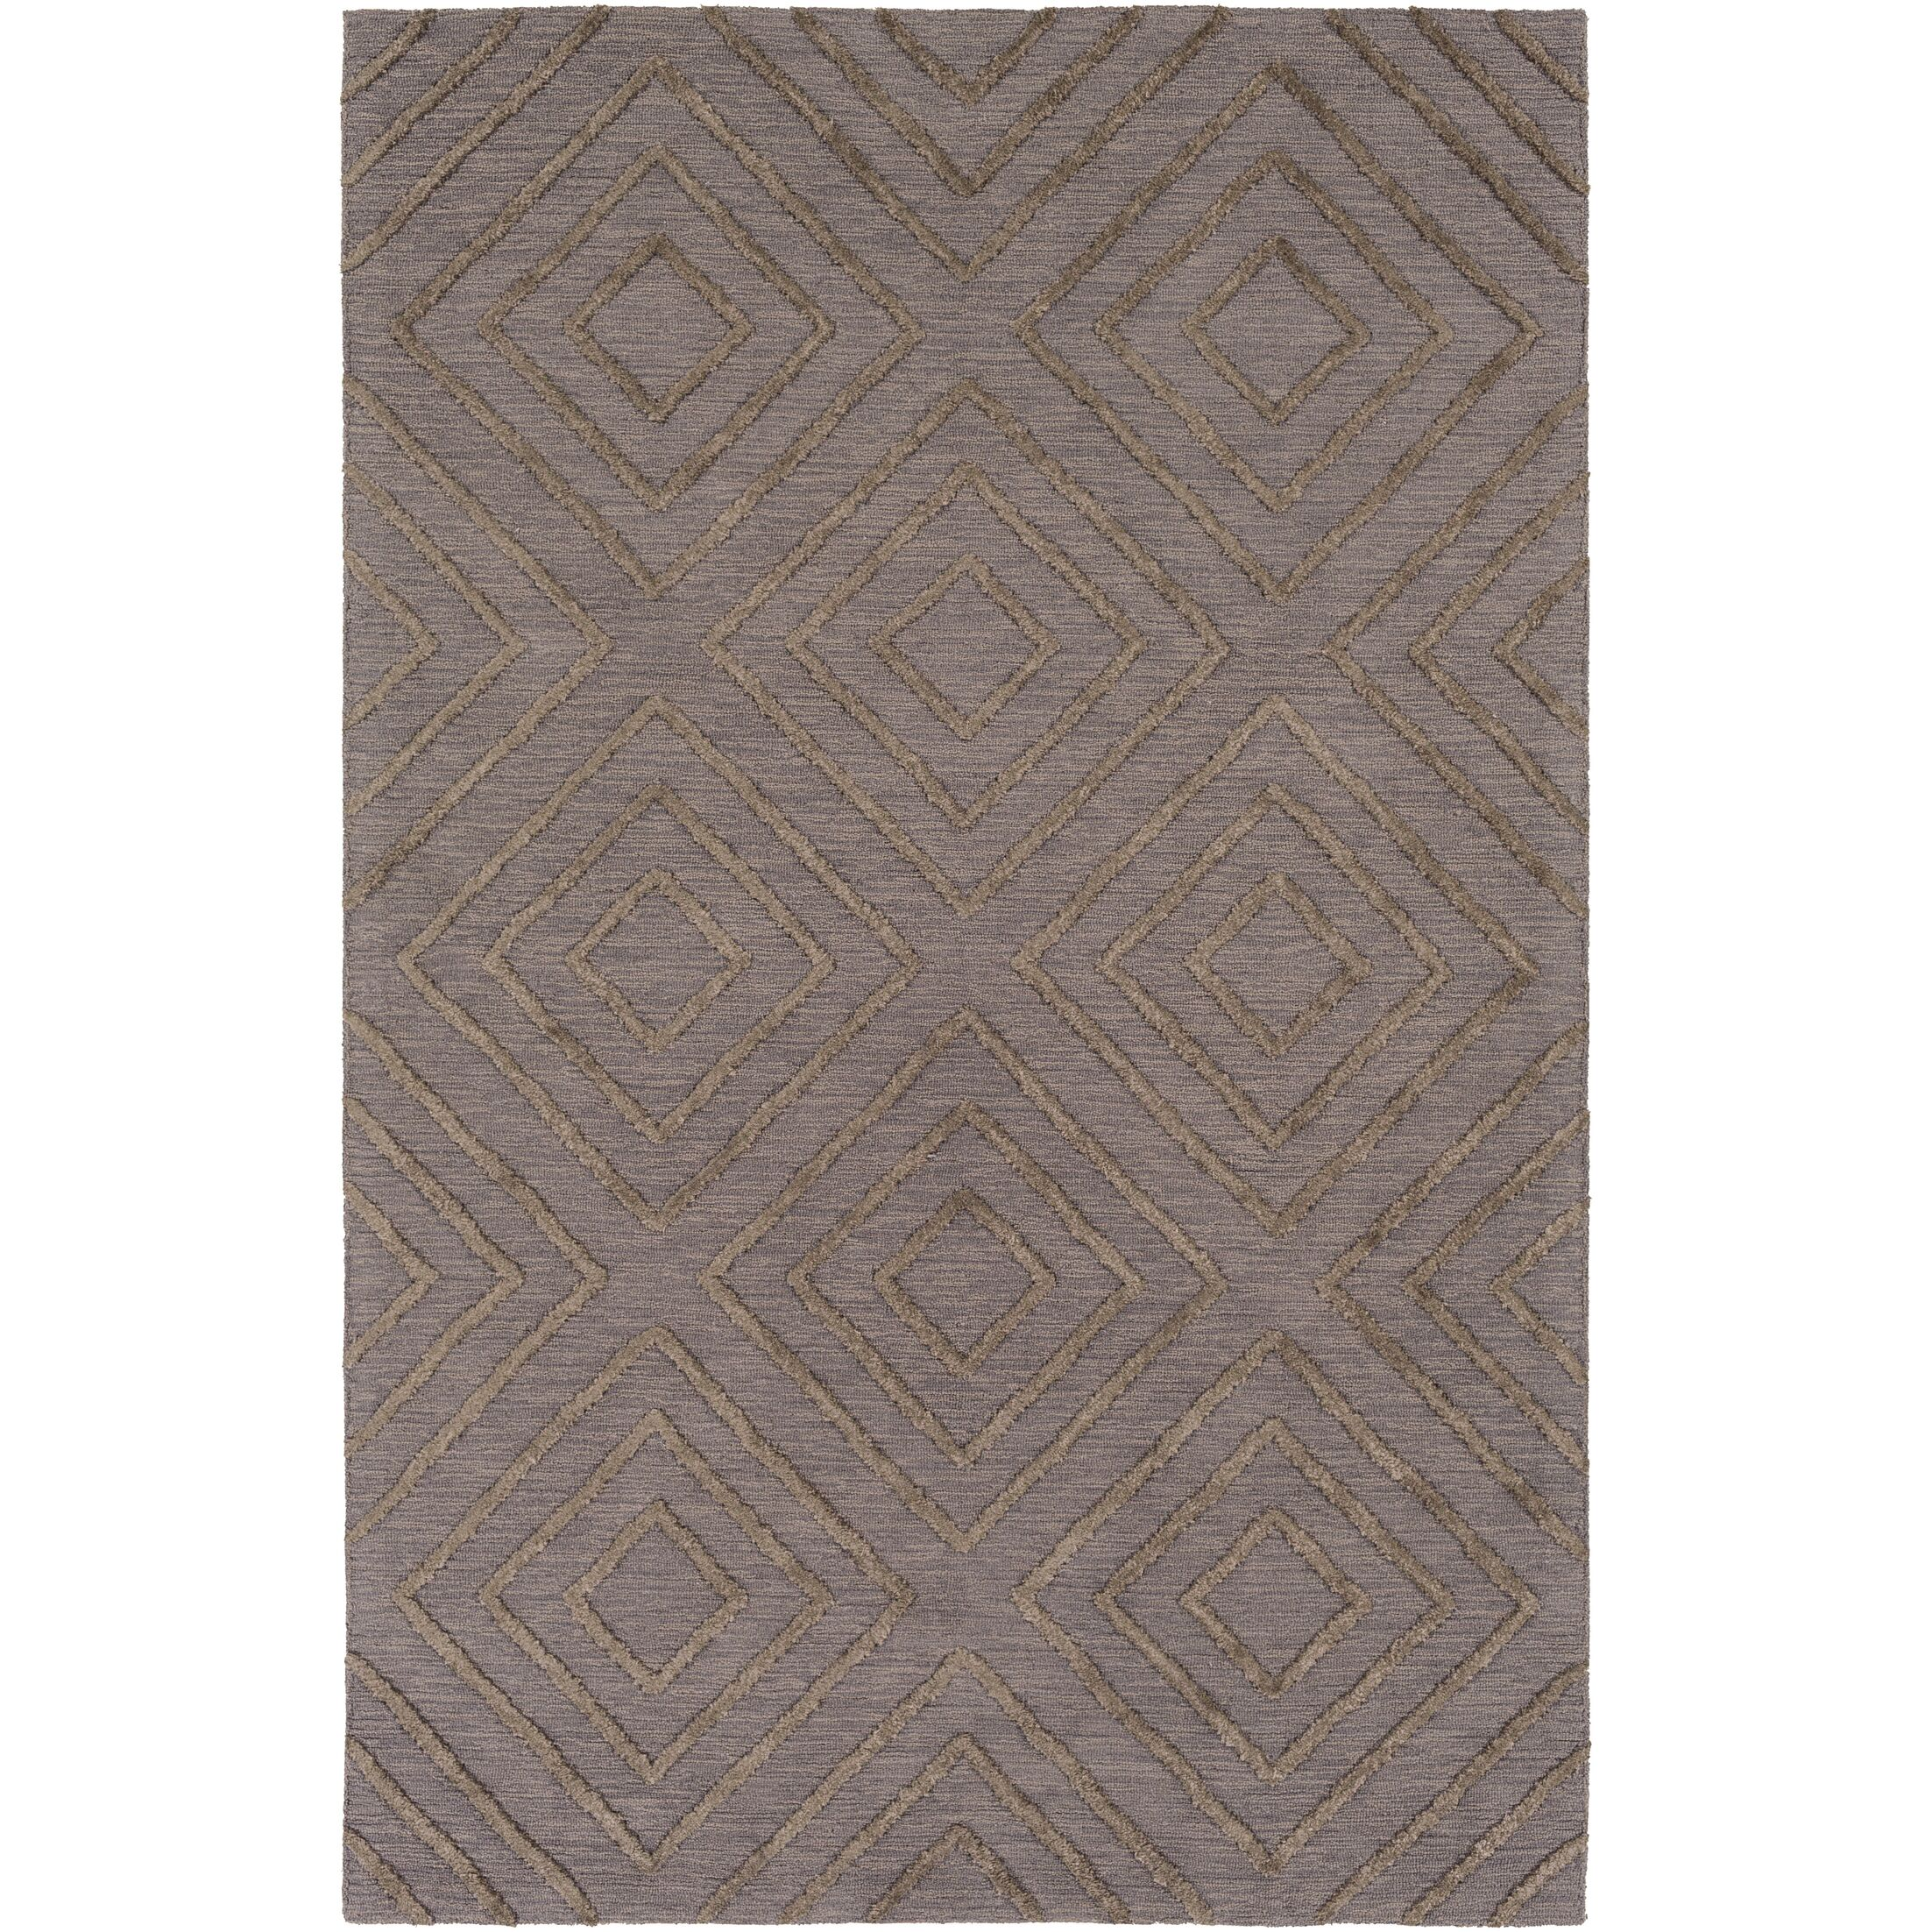 Berkeley Hand-Hooked Taupe/Black Area Rug Rug Size: Rectangle 8' x 10'